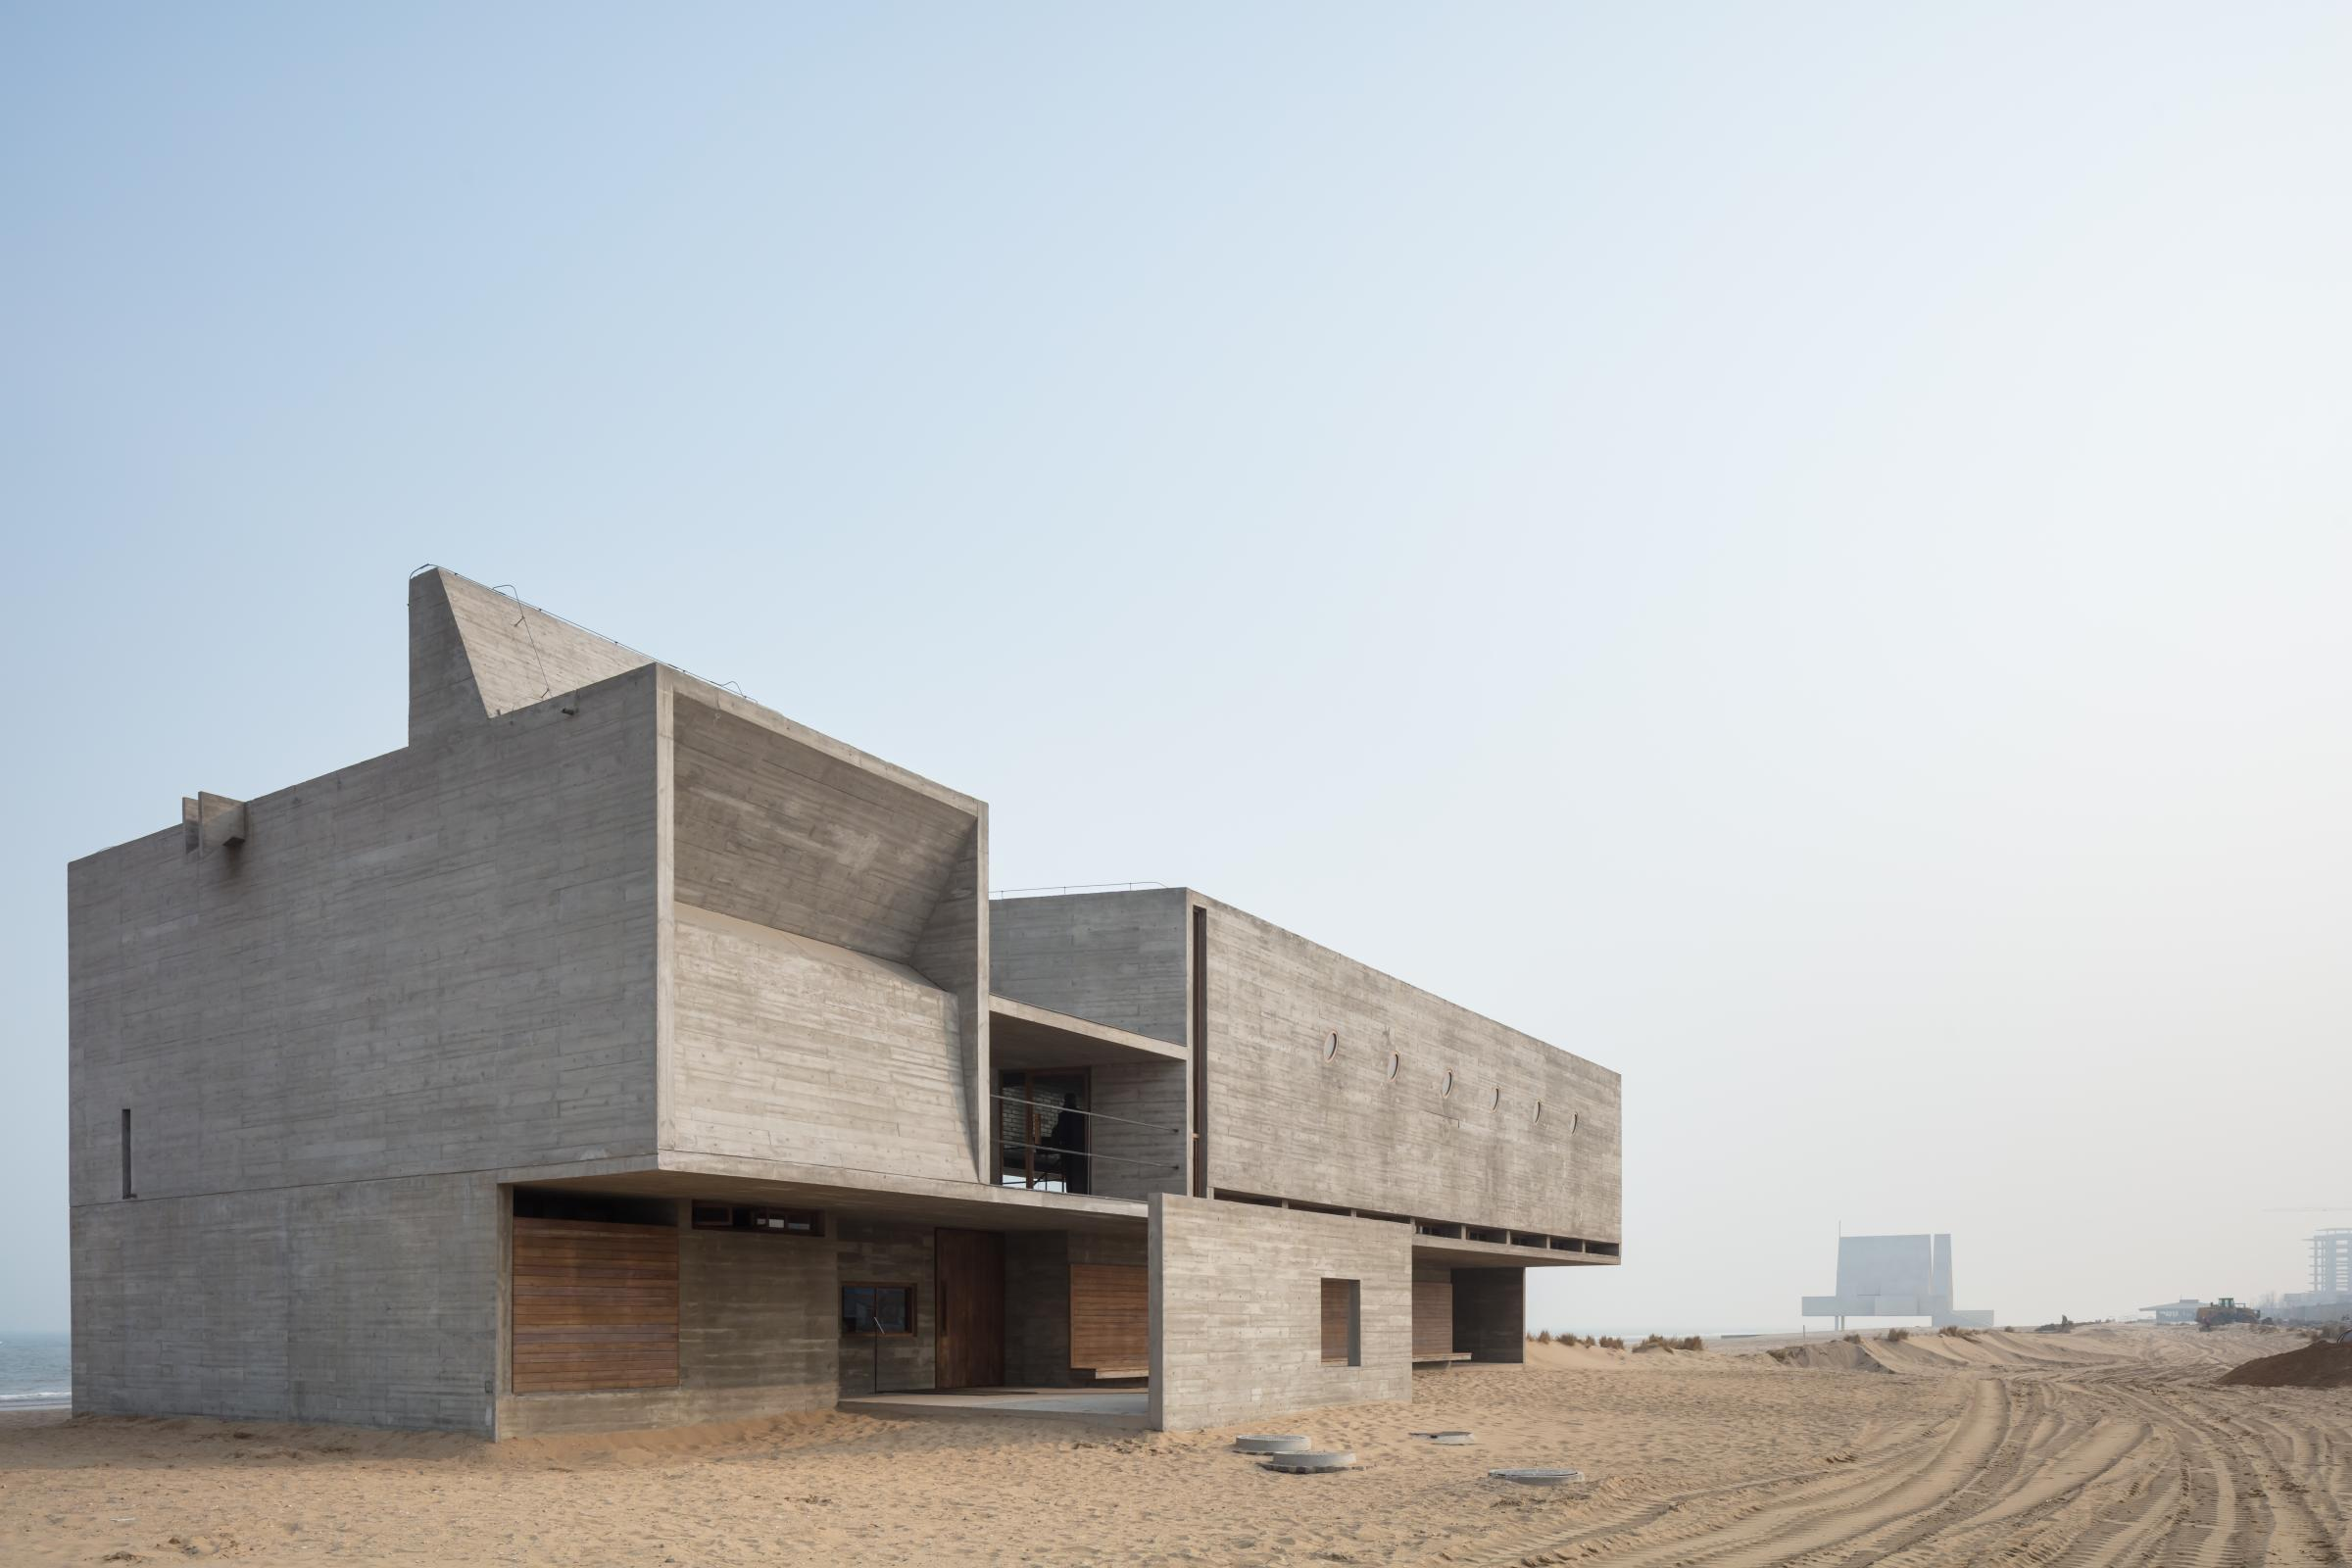 Photograph of Seashore Library, designed by Vector Architects and located in Beidaihe, China